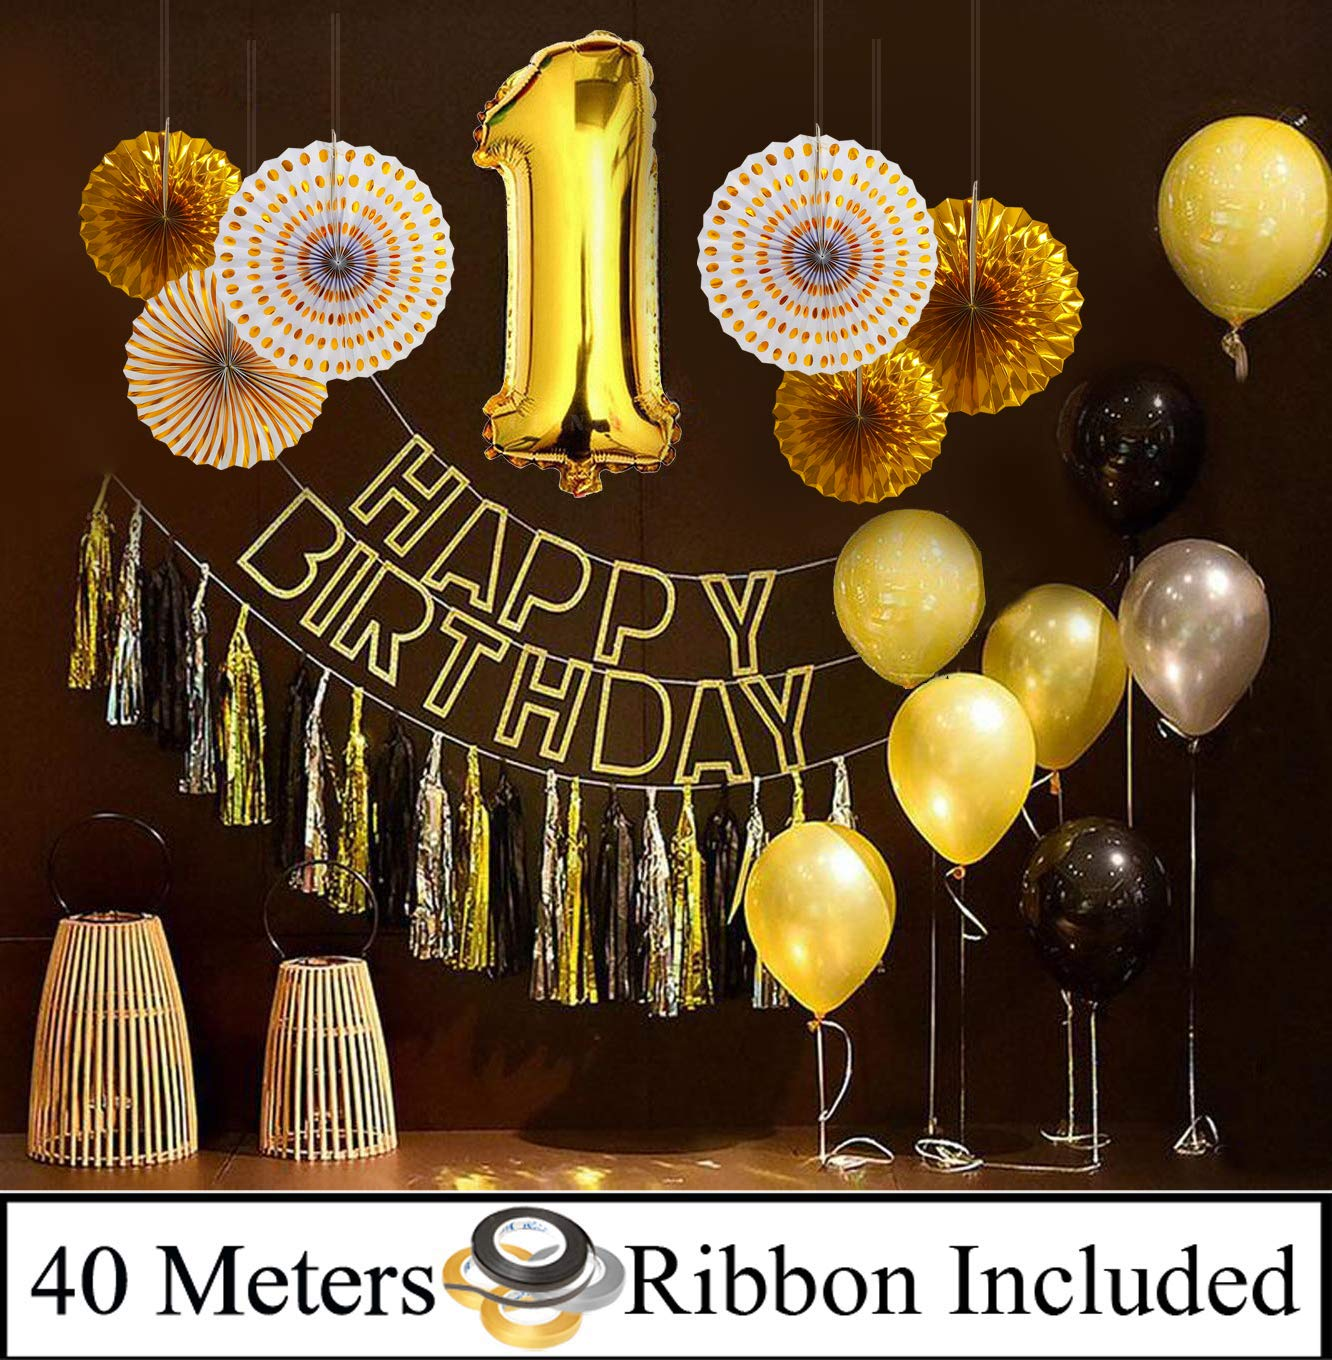 Buy Amfin First Birthday Decoration Combo 1st Birthday Decoration For Baby Girl 1st Birthday Decoration Items First Birthday Party Decoration 1st Birthday Balloons Birthday Party Golden